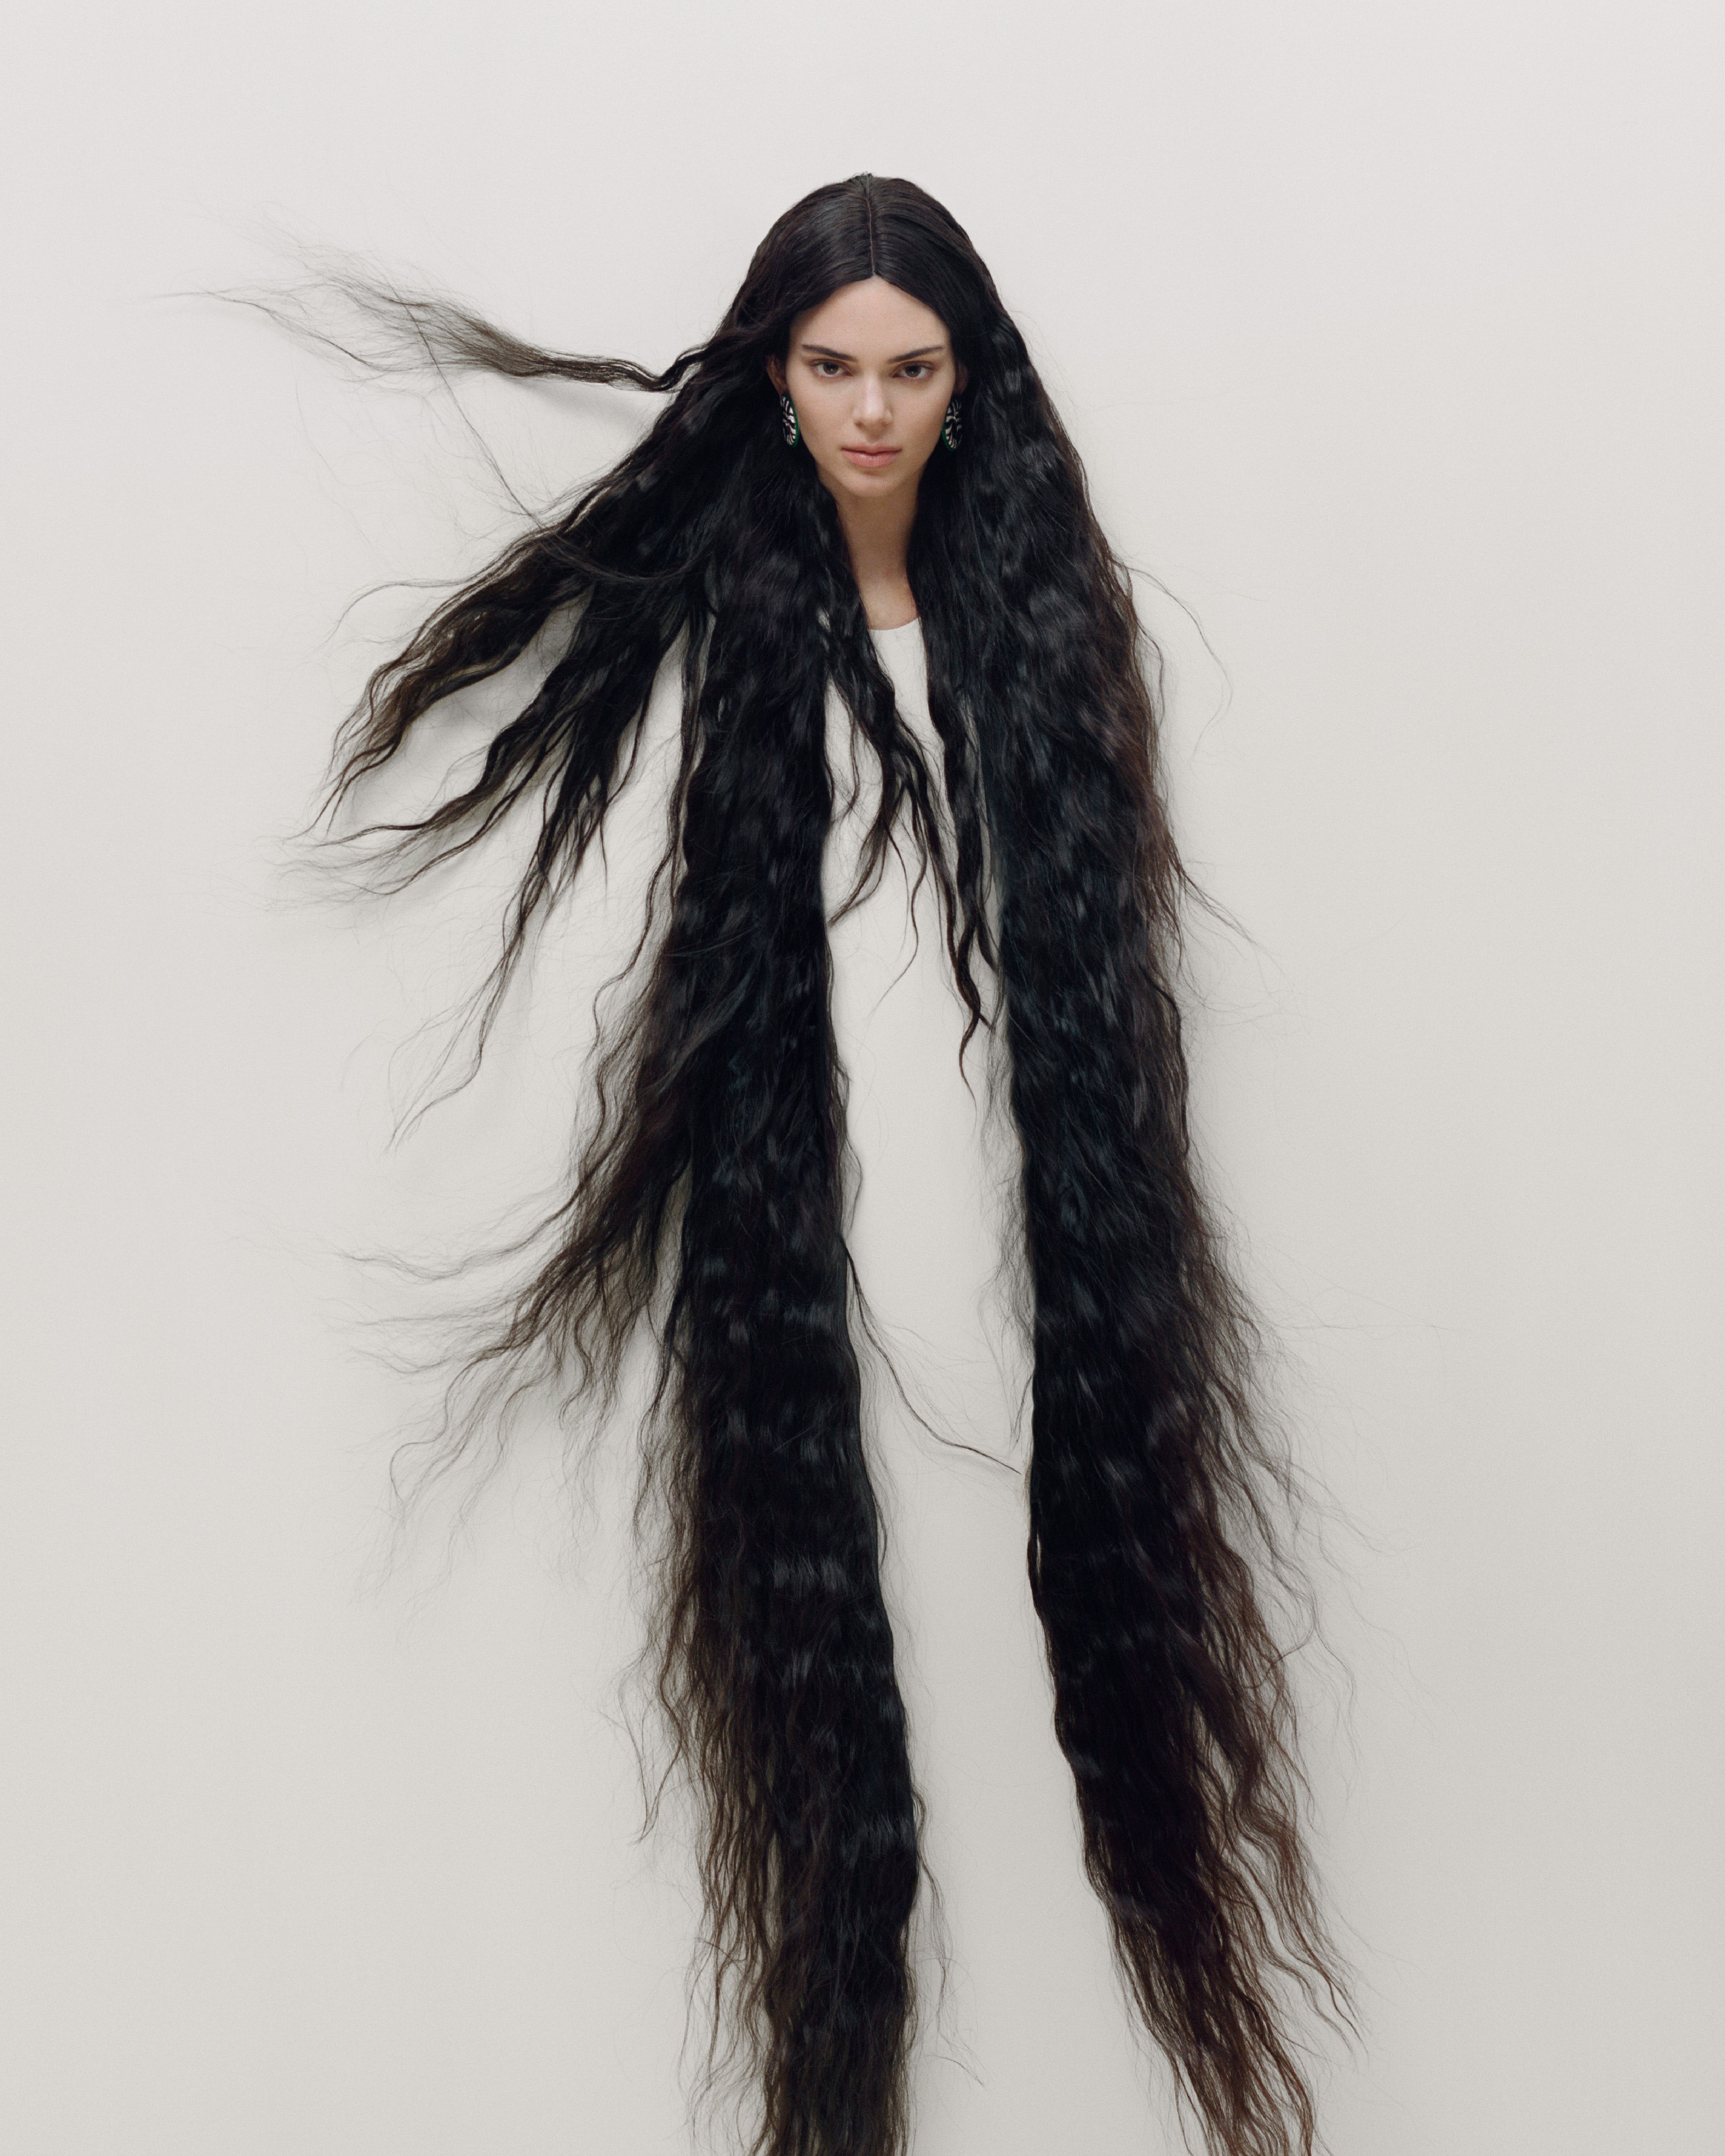 Kendall Jenner By Maurizio Cattelan Photographed by Campbell Addy For Garage Magazine Earings by Catier